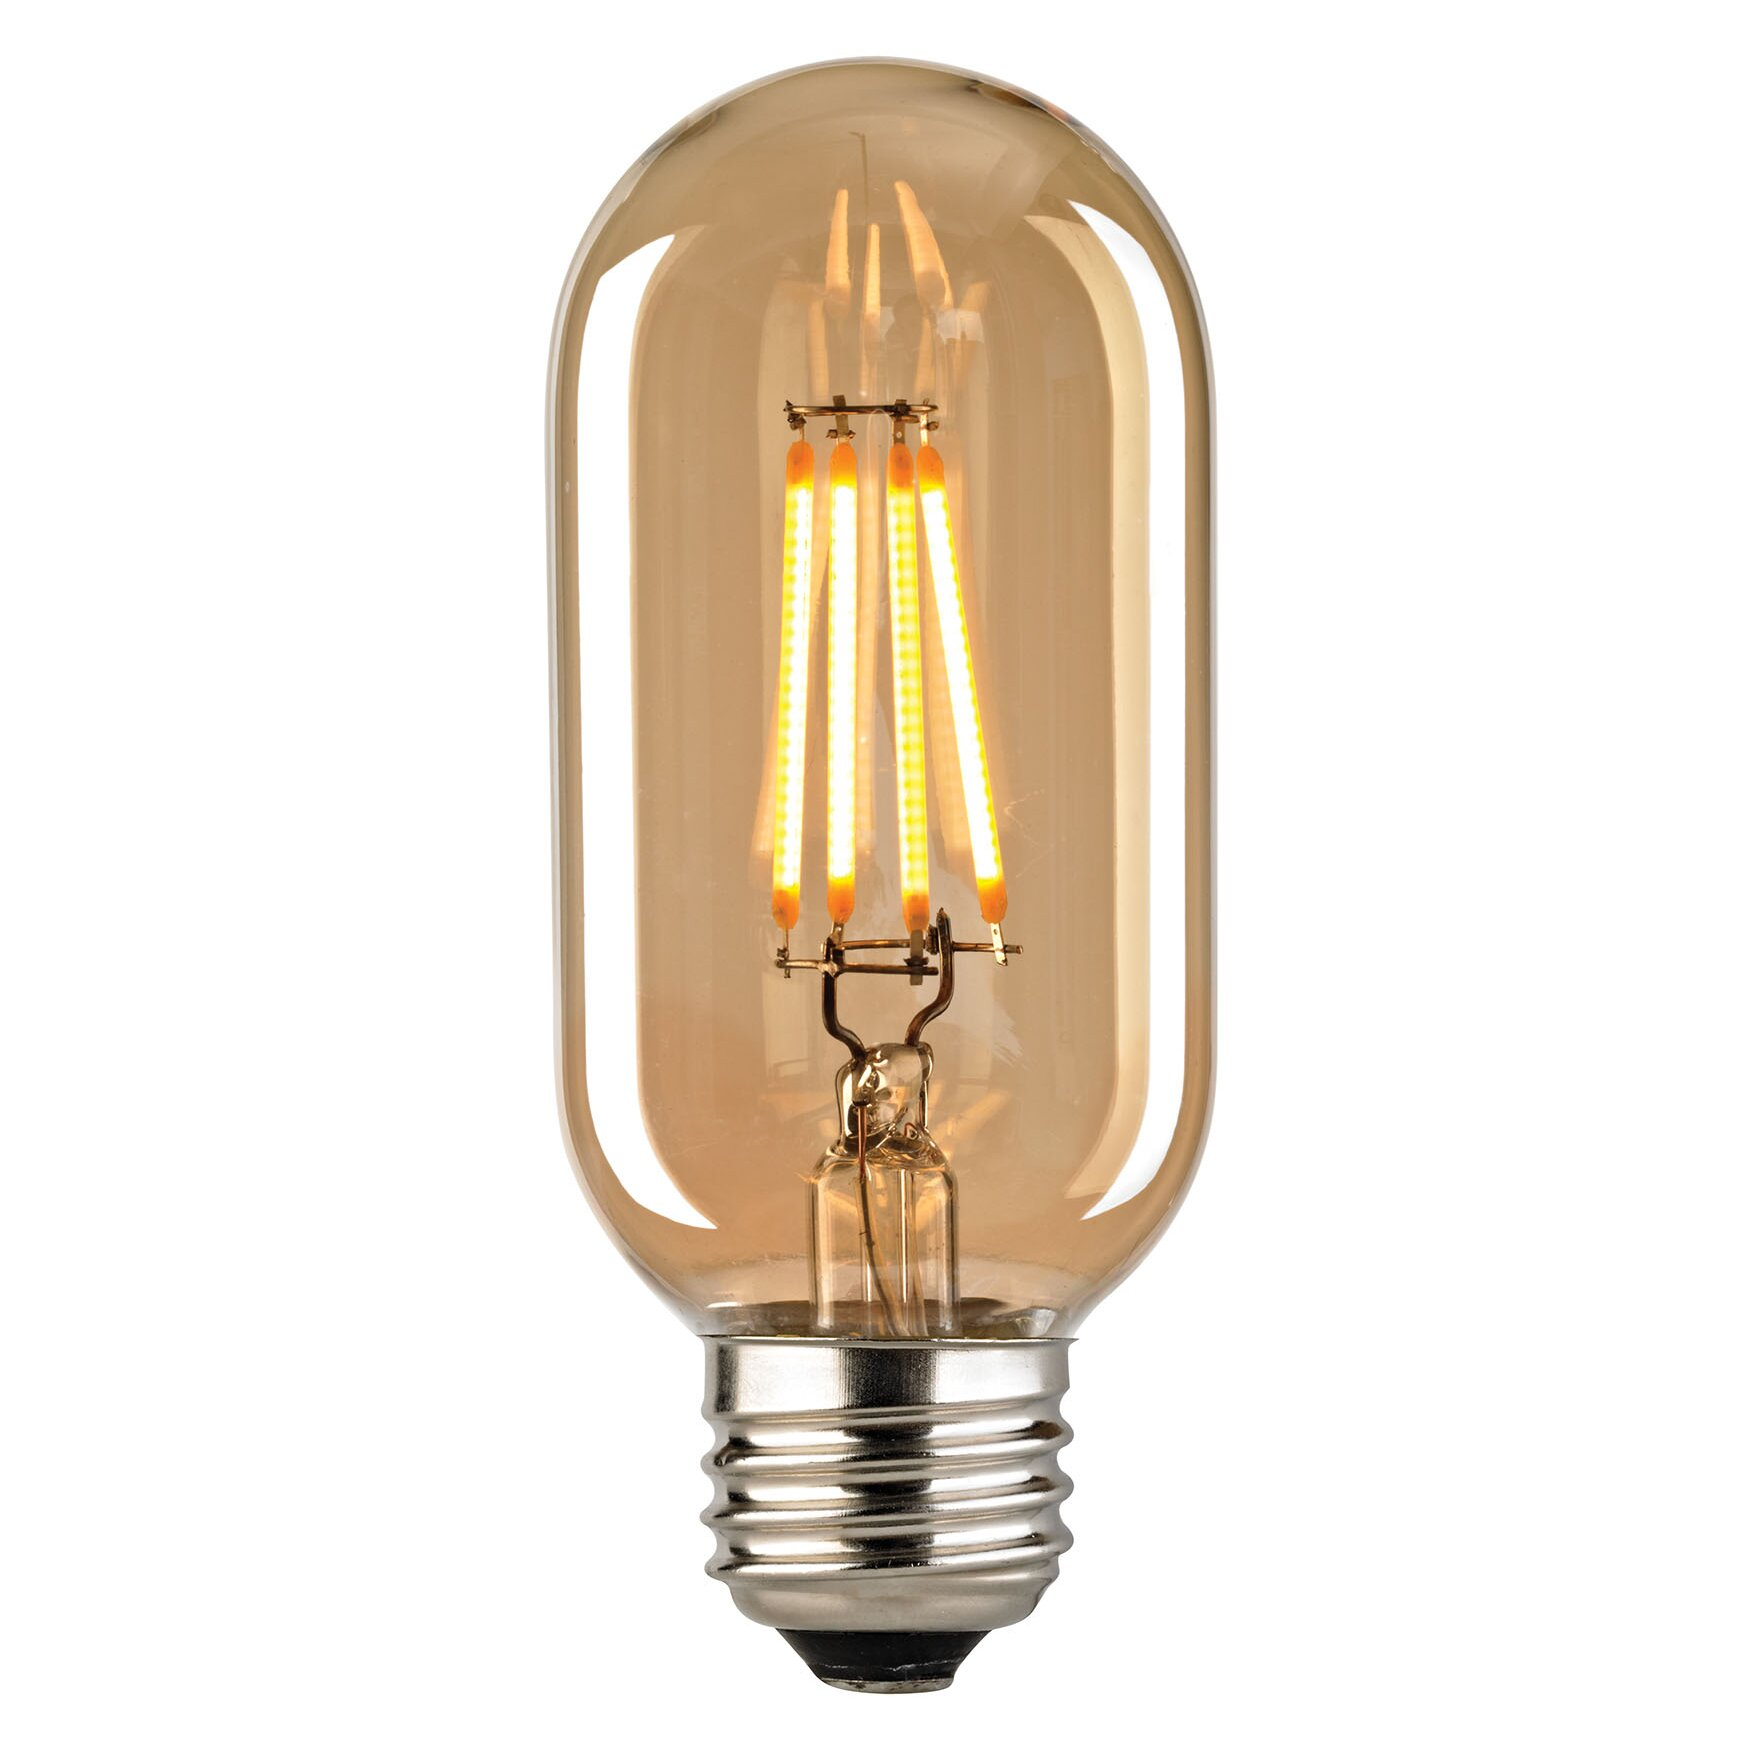 Elk Lighting Filament 3 Wattage Medium Led Light Bulb Wayfair